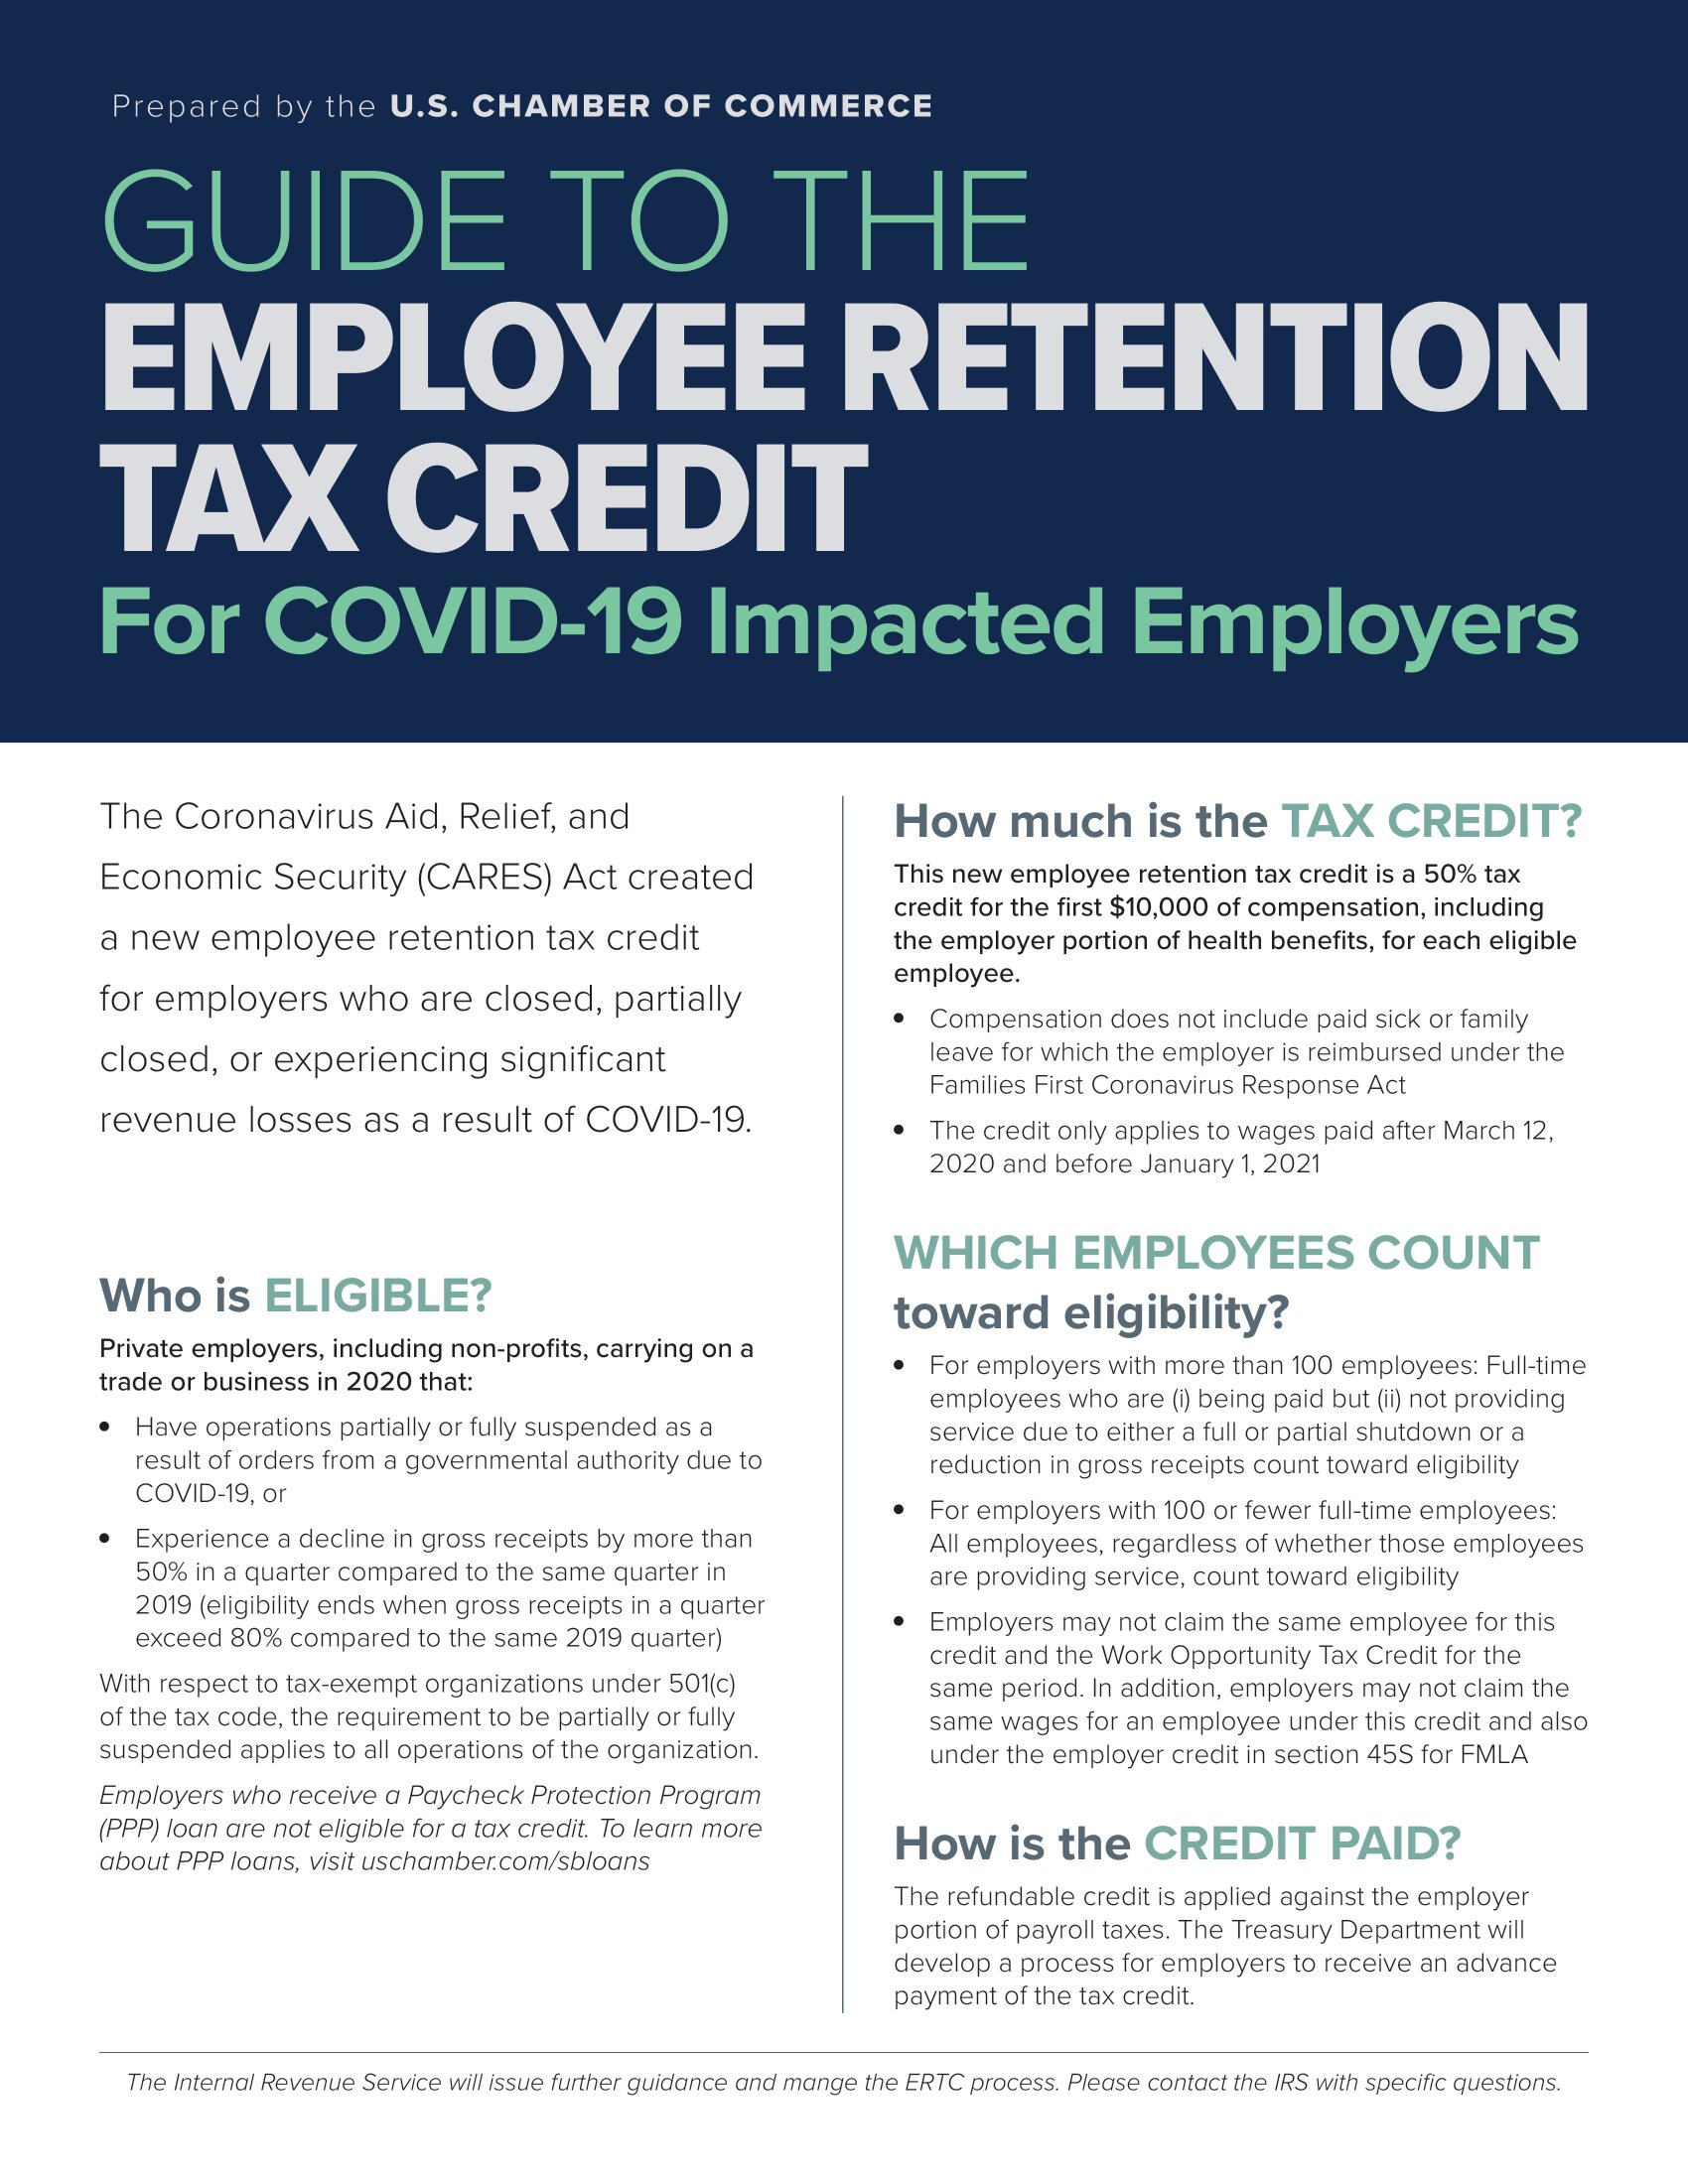 uscc_covid19_employee-retention-tax-credit.jpg